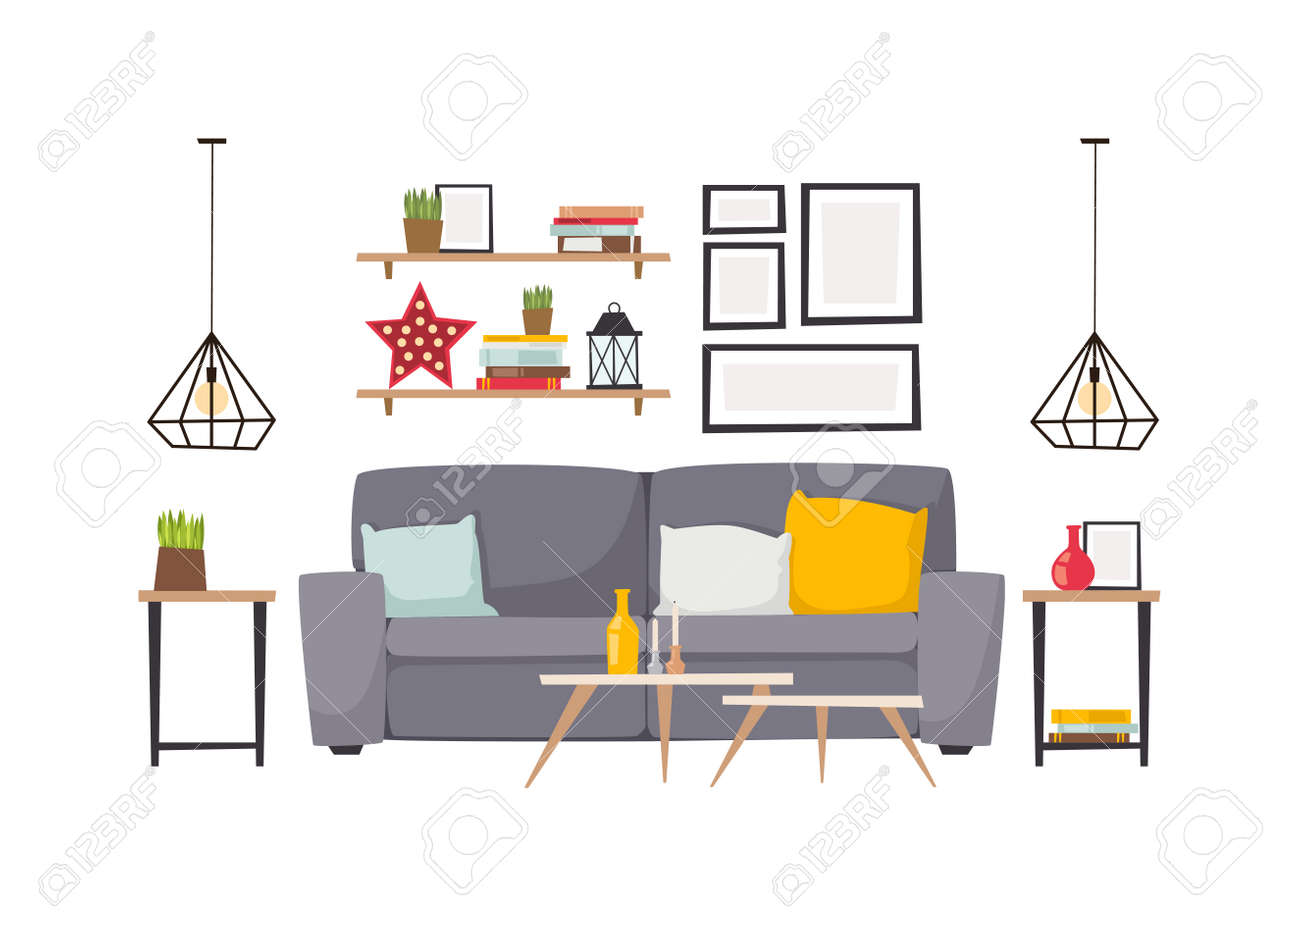 Good Stylish Living Room Apartment Interior With Grey Sofa And Small Coffee Table.  Light Apartment Interior